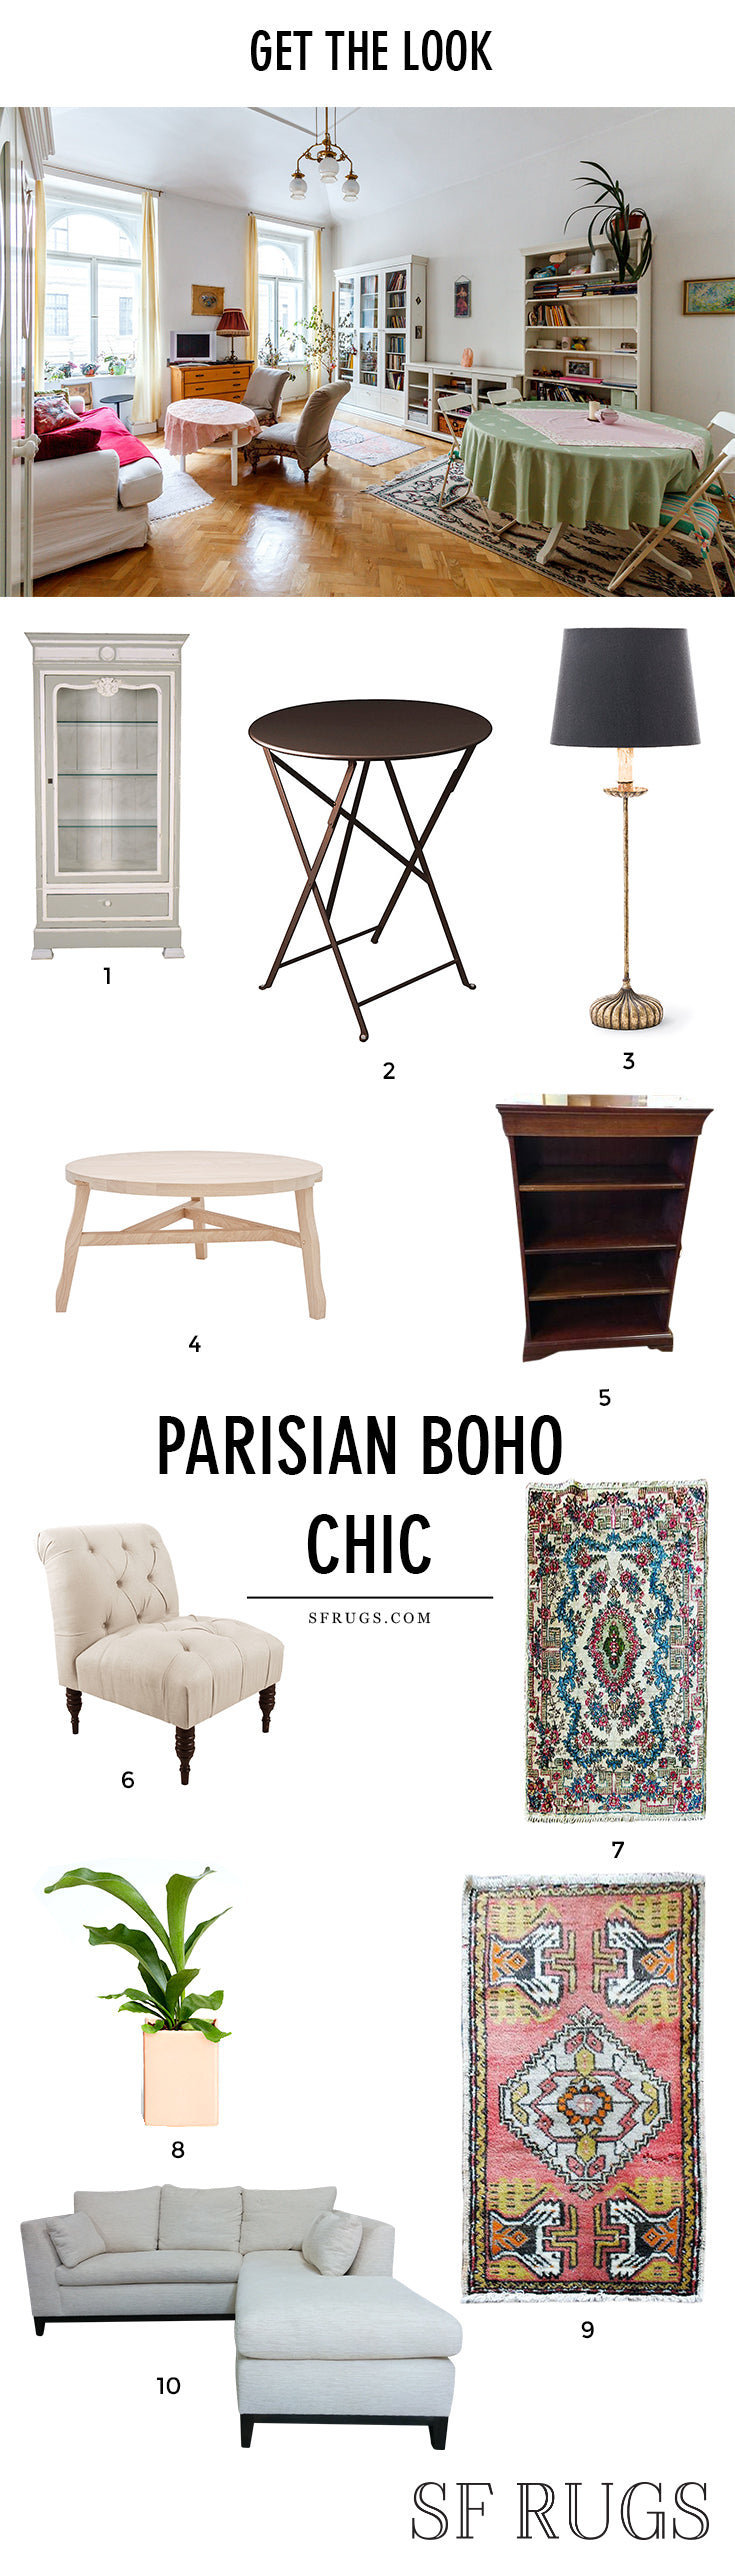 Awesome Parisian Bohemian chic home decor. Ideas for Parisian chic decor, parisian chic home, parisian chic living room, parisian decor, parisian apartment, parisian home, parisian decor vintage, parisian decor modern, parisian decor living room, parisian decor apartment, parisian decor interior, parisian decor bohemian. @sfrugs sfrugs.com